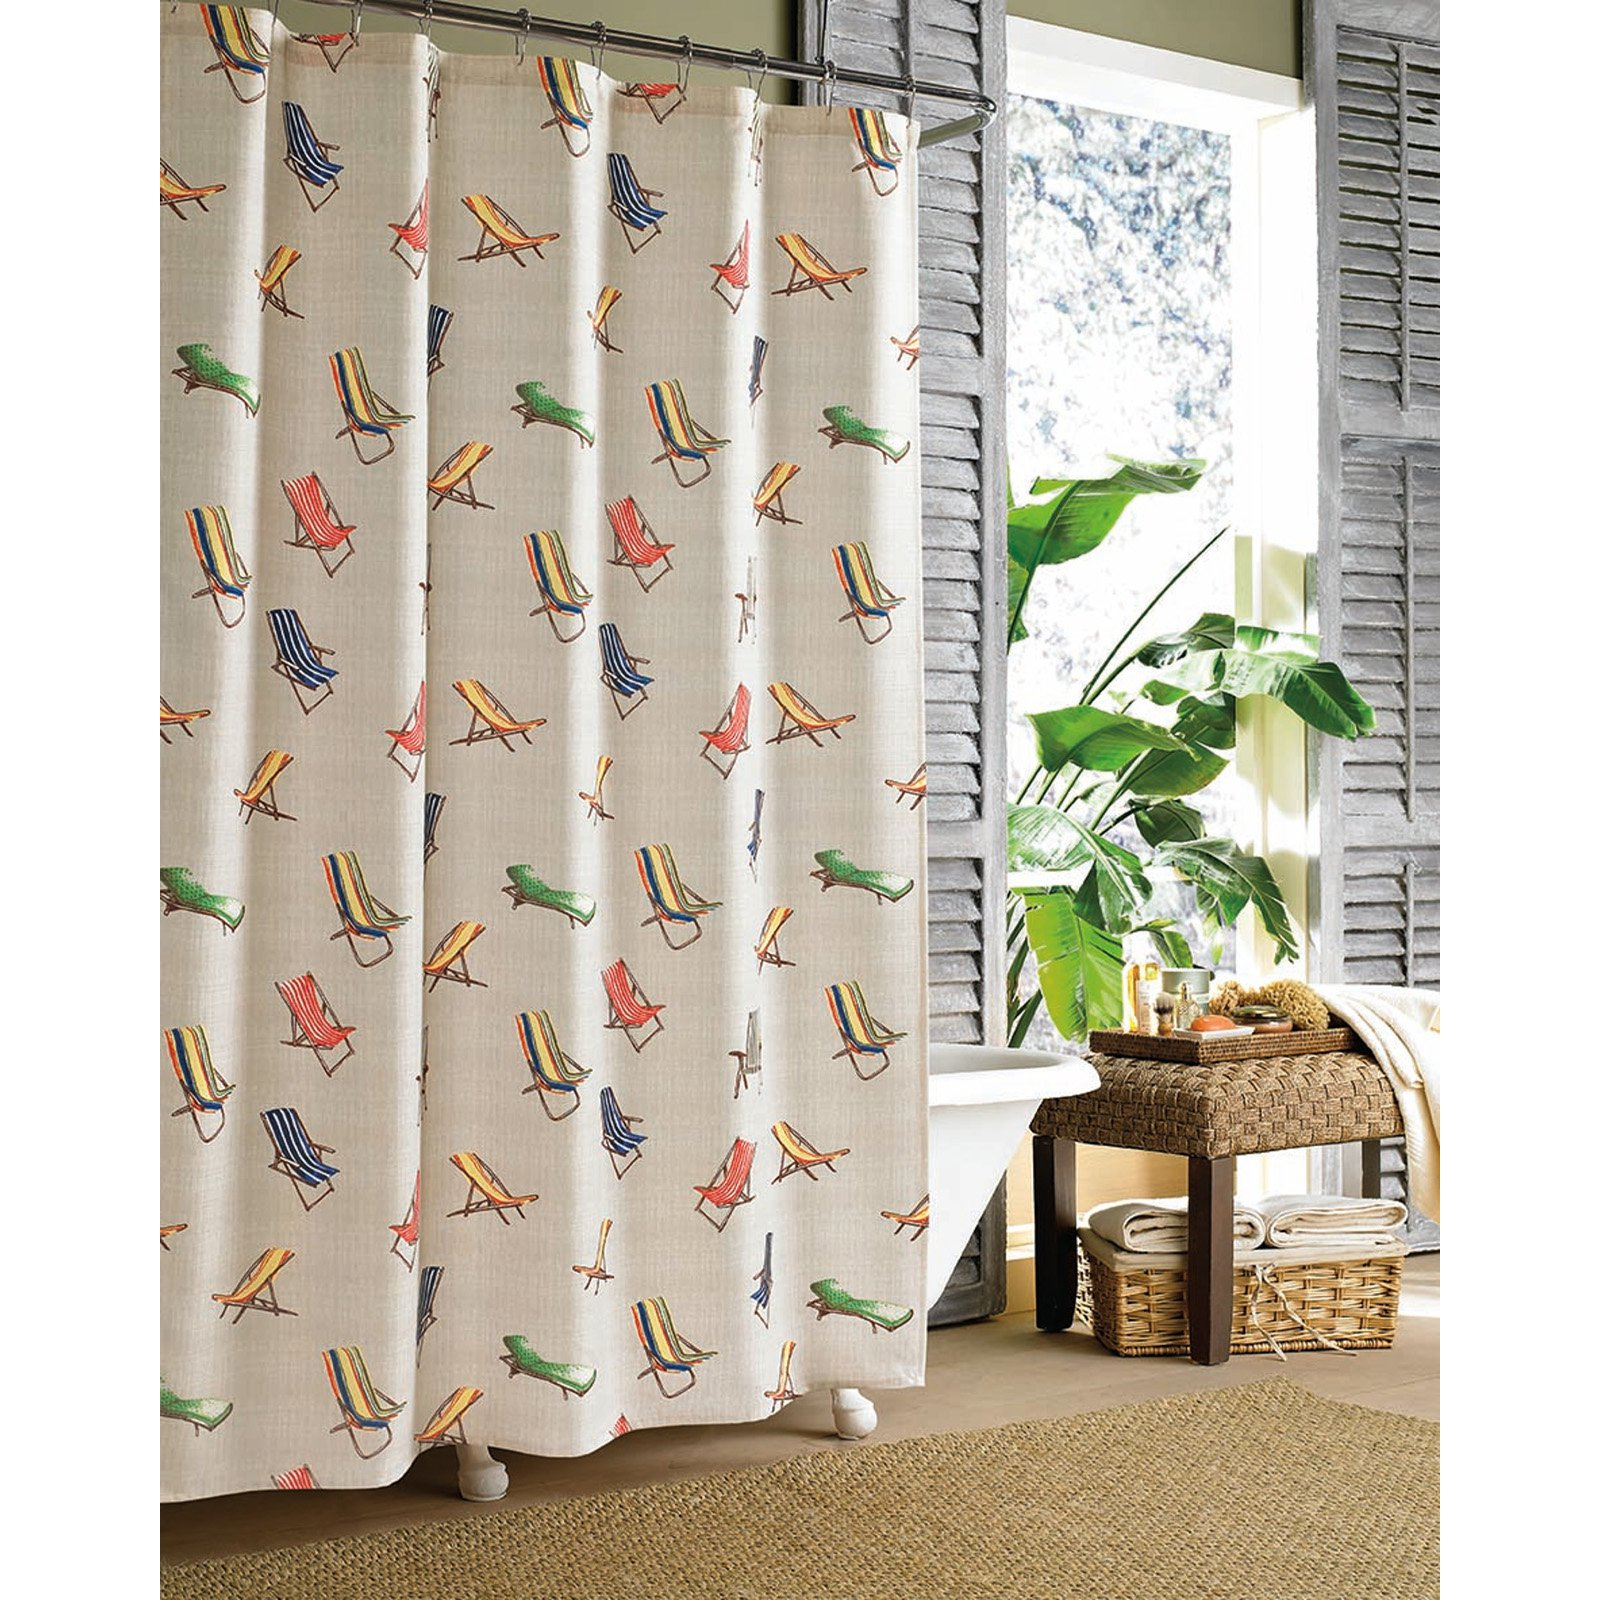 tommy bahama beach chairs shower curtain by revman